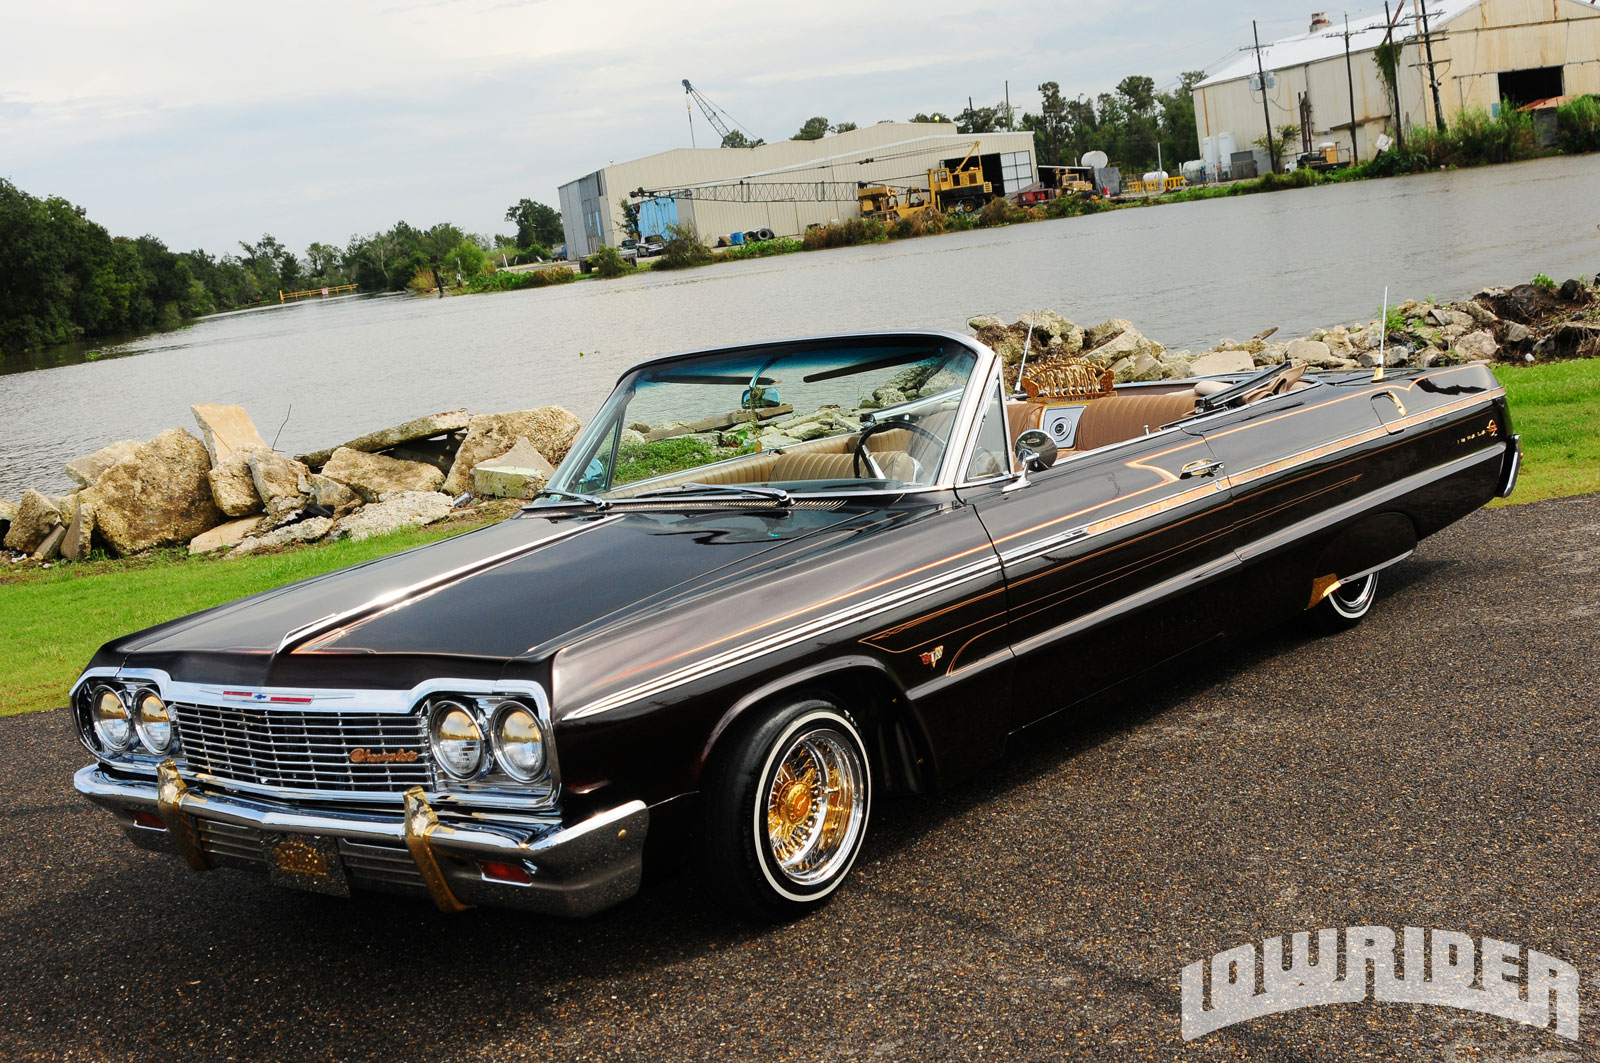 Chevy Impala Convertible Project Car For Sale